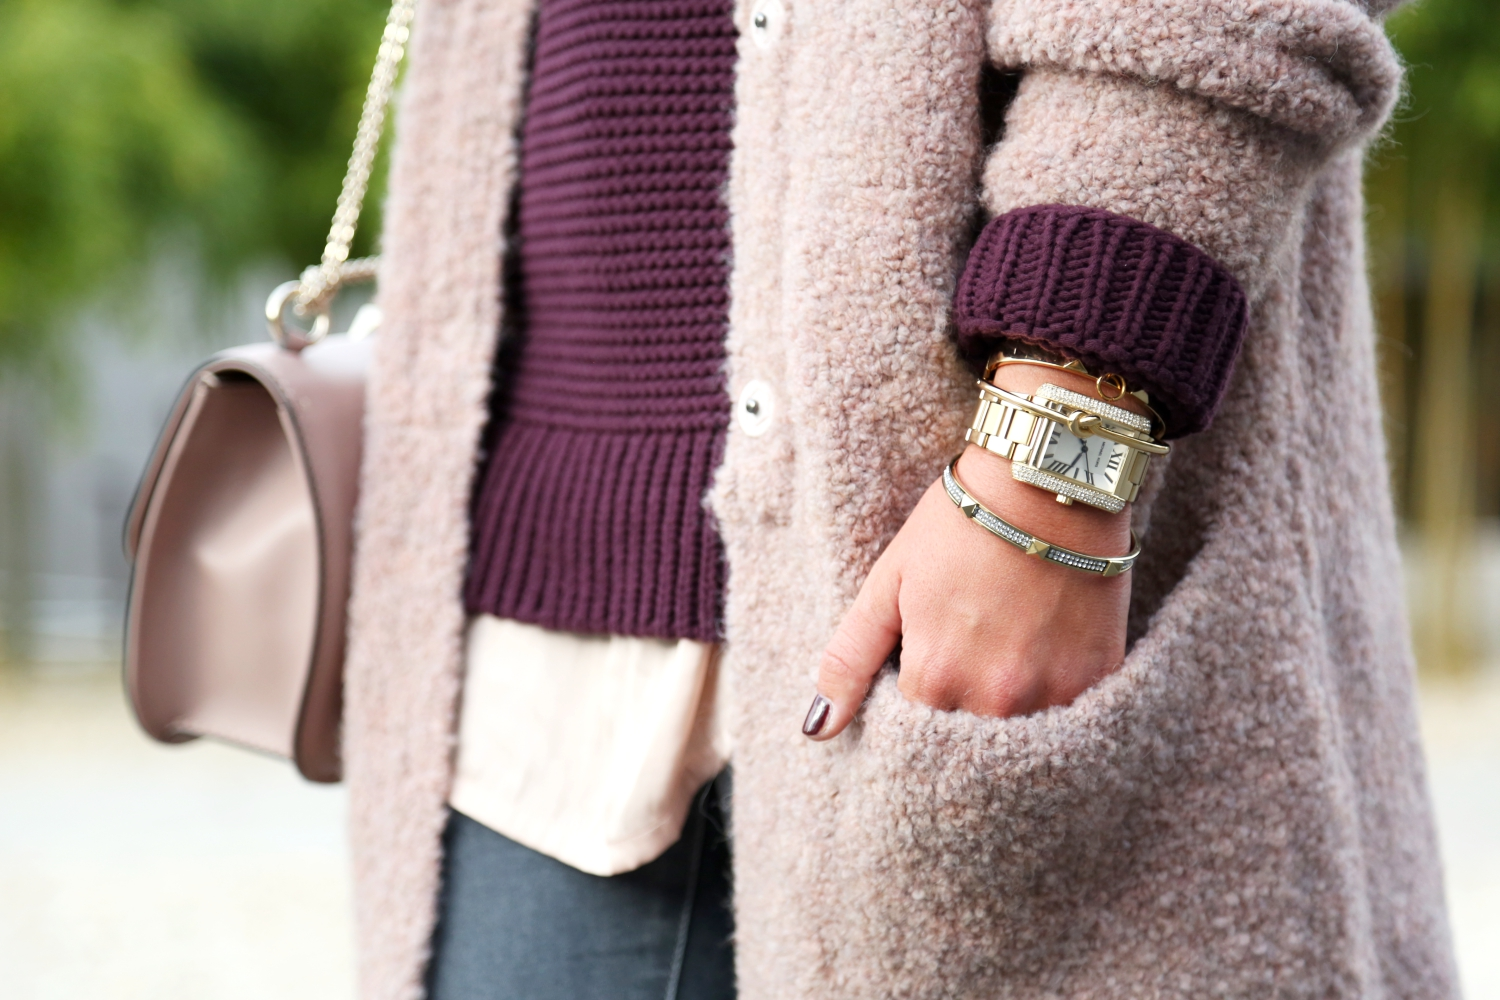 outfit-details-cardigan-armcandy-michael-kors-watch-turtle-neck-sweater